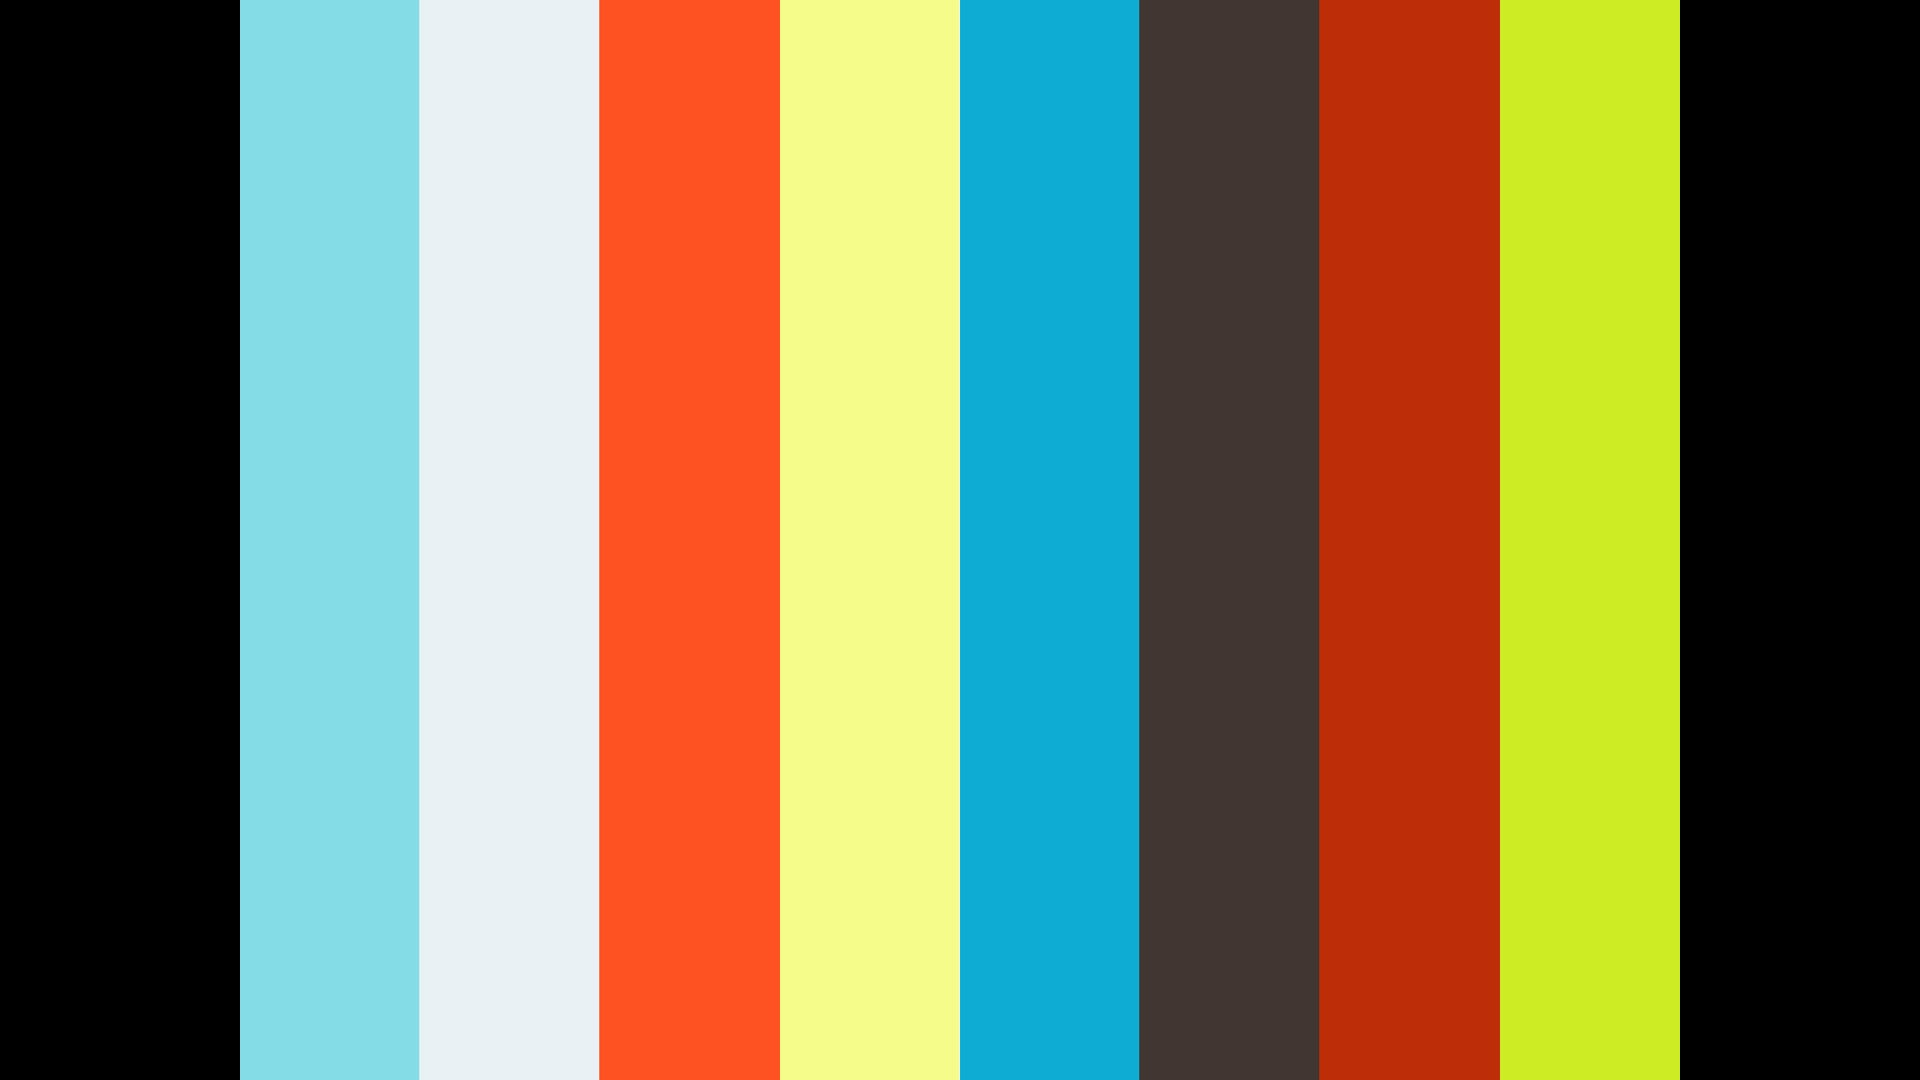 What does redemption mean in bankruptcy?